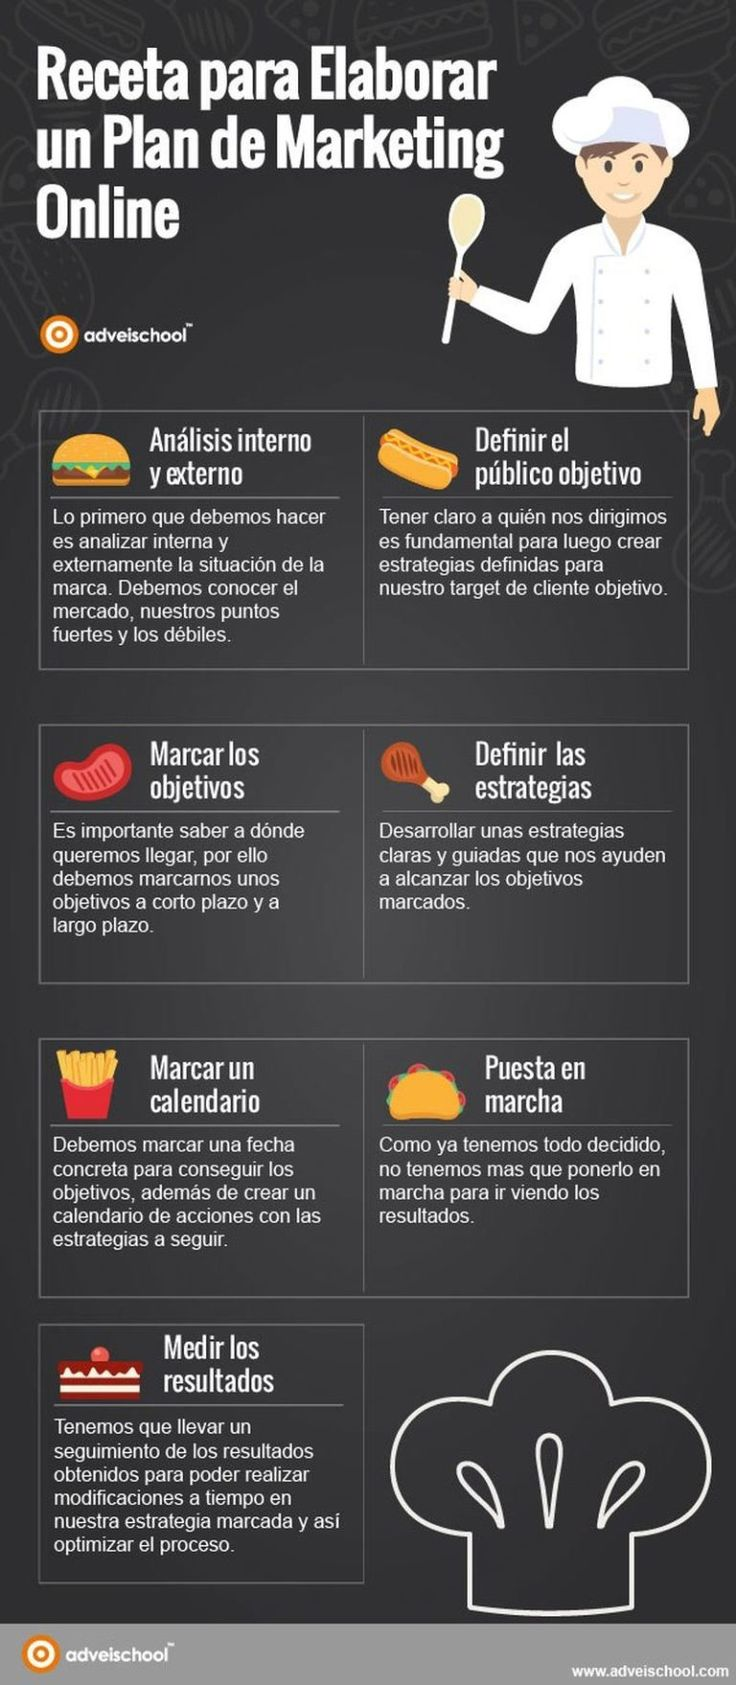 Receta para elaborar un Plan de Marketing Online. Infografía en español. #CommunityManager